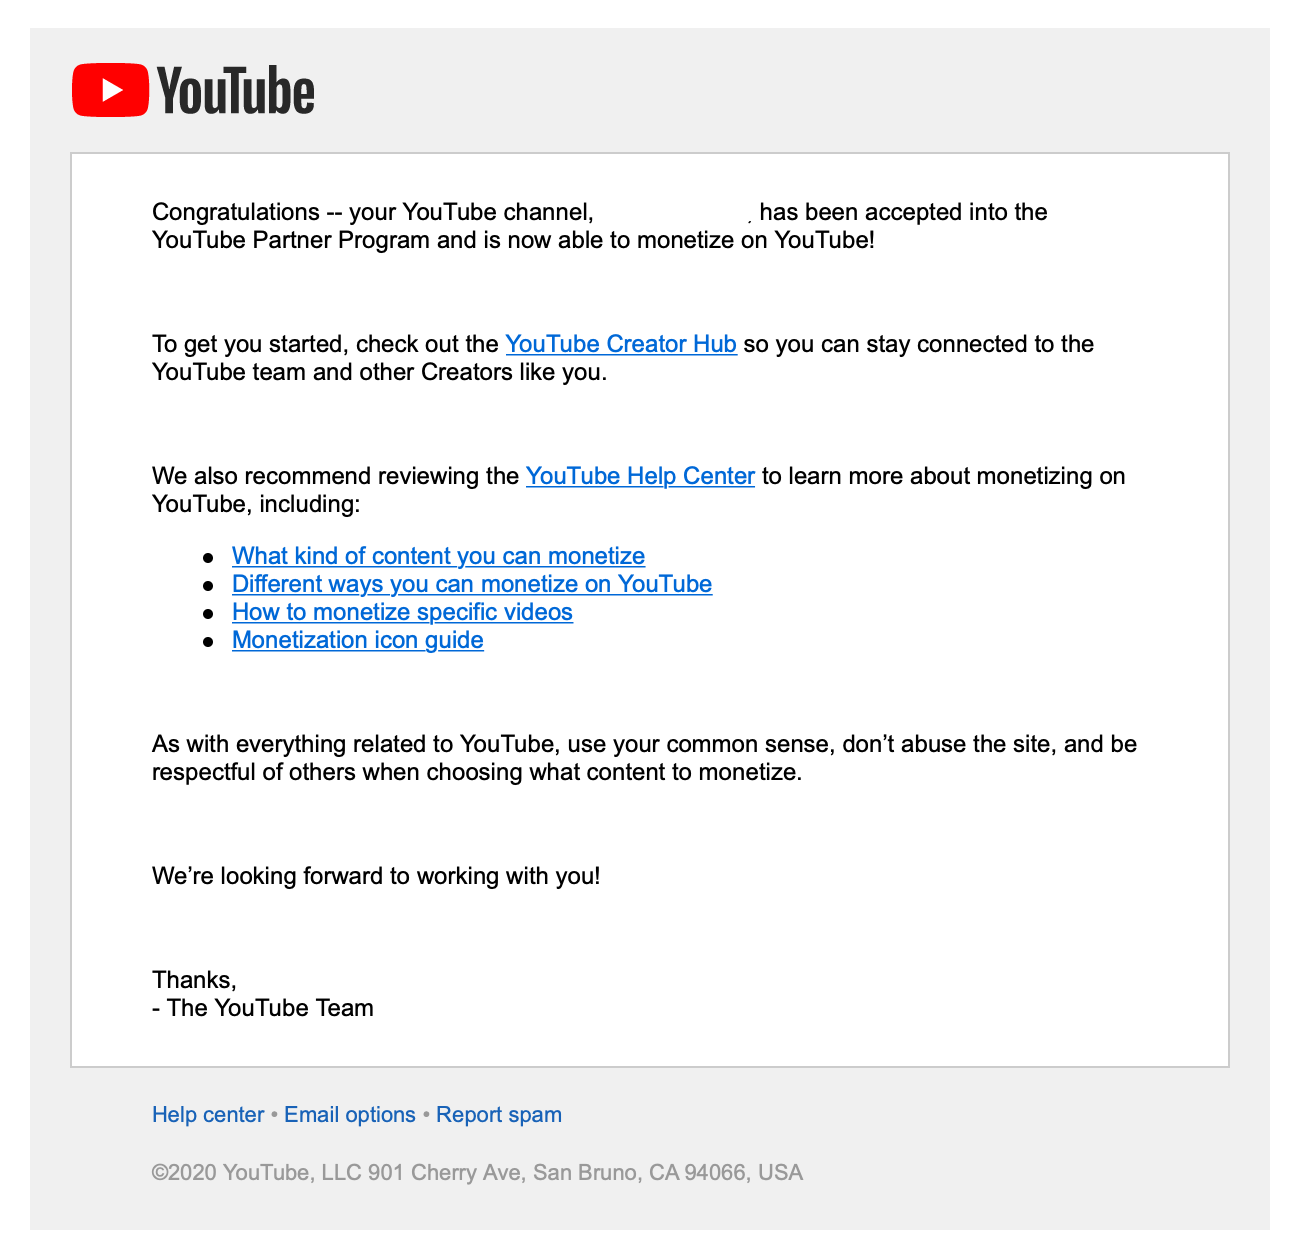 youtube-partner-program-accepted.png